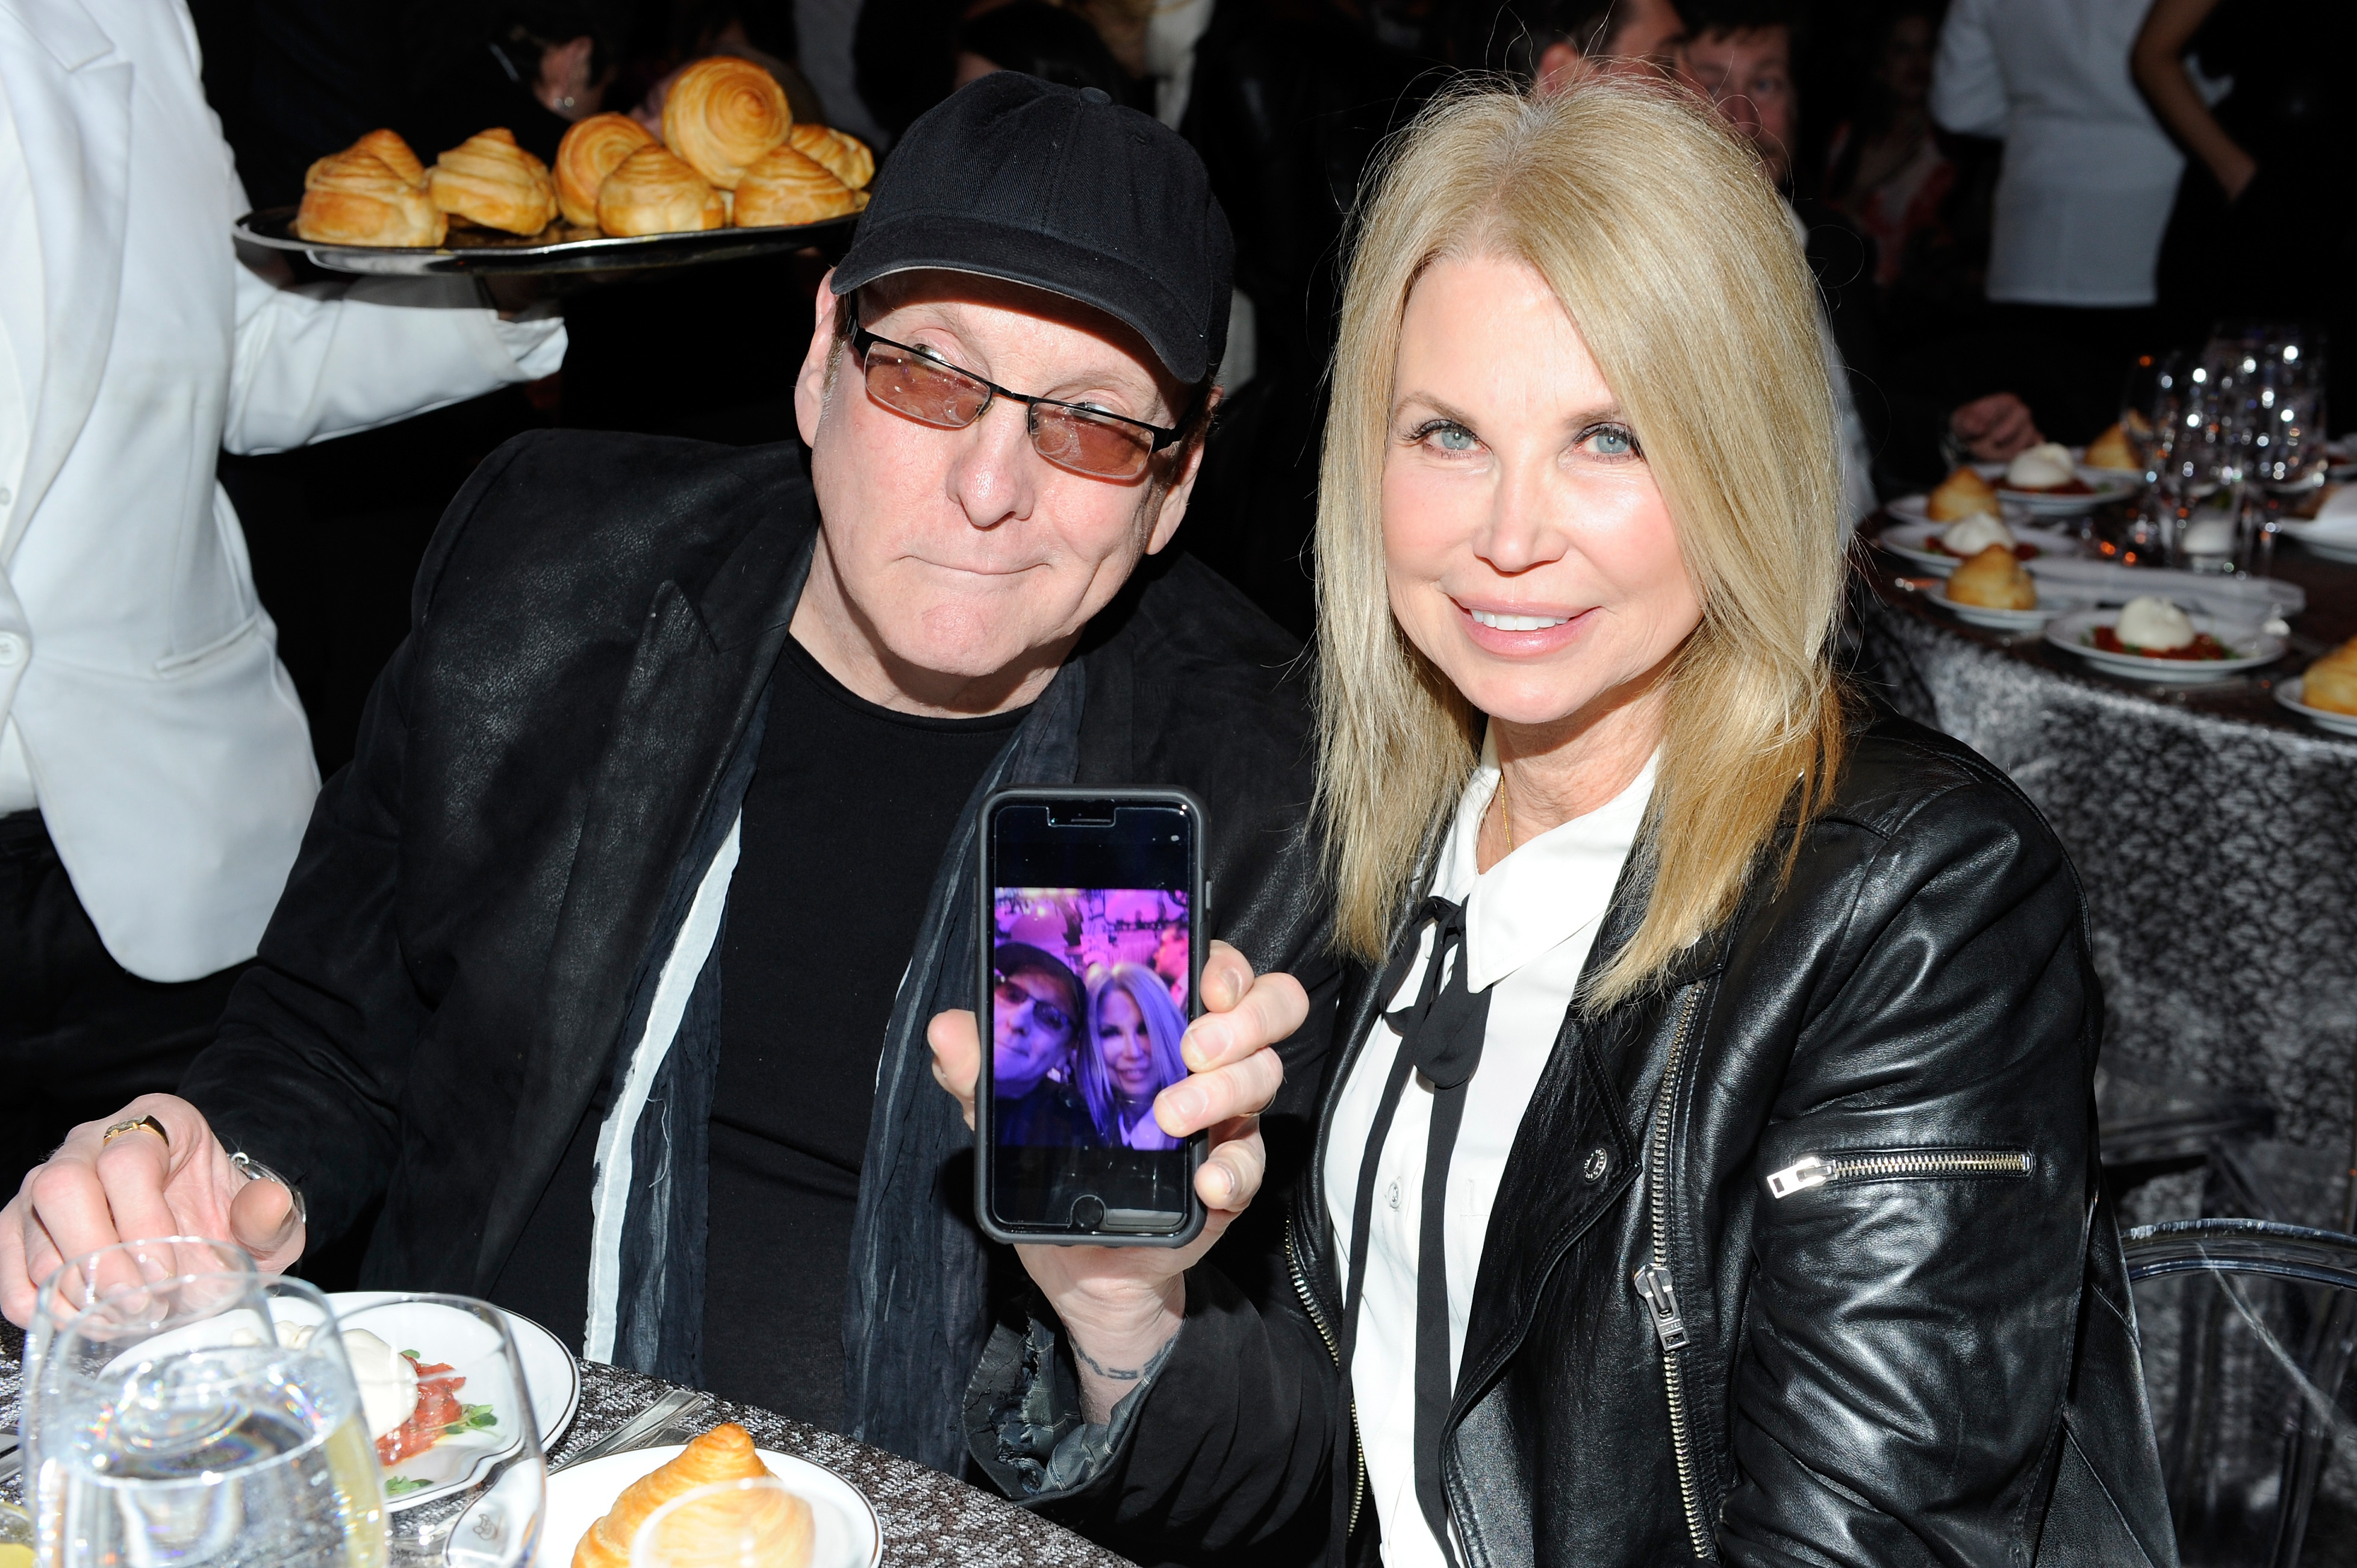 NEW YORK, NY - APRIL 13: Guitarist Rick Nielsen of Cheap Trick (L) and Karen Nielsen attend the 2017 SESAC Pop Awards on April 13, 2017 in New York City. (Photo by Shawn Ehlers/Getty Images for SESAC)